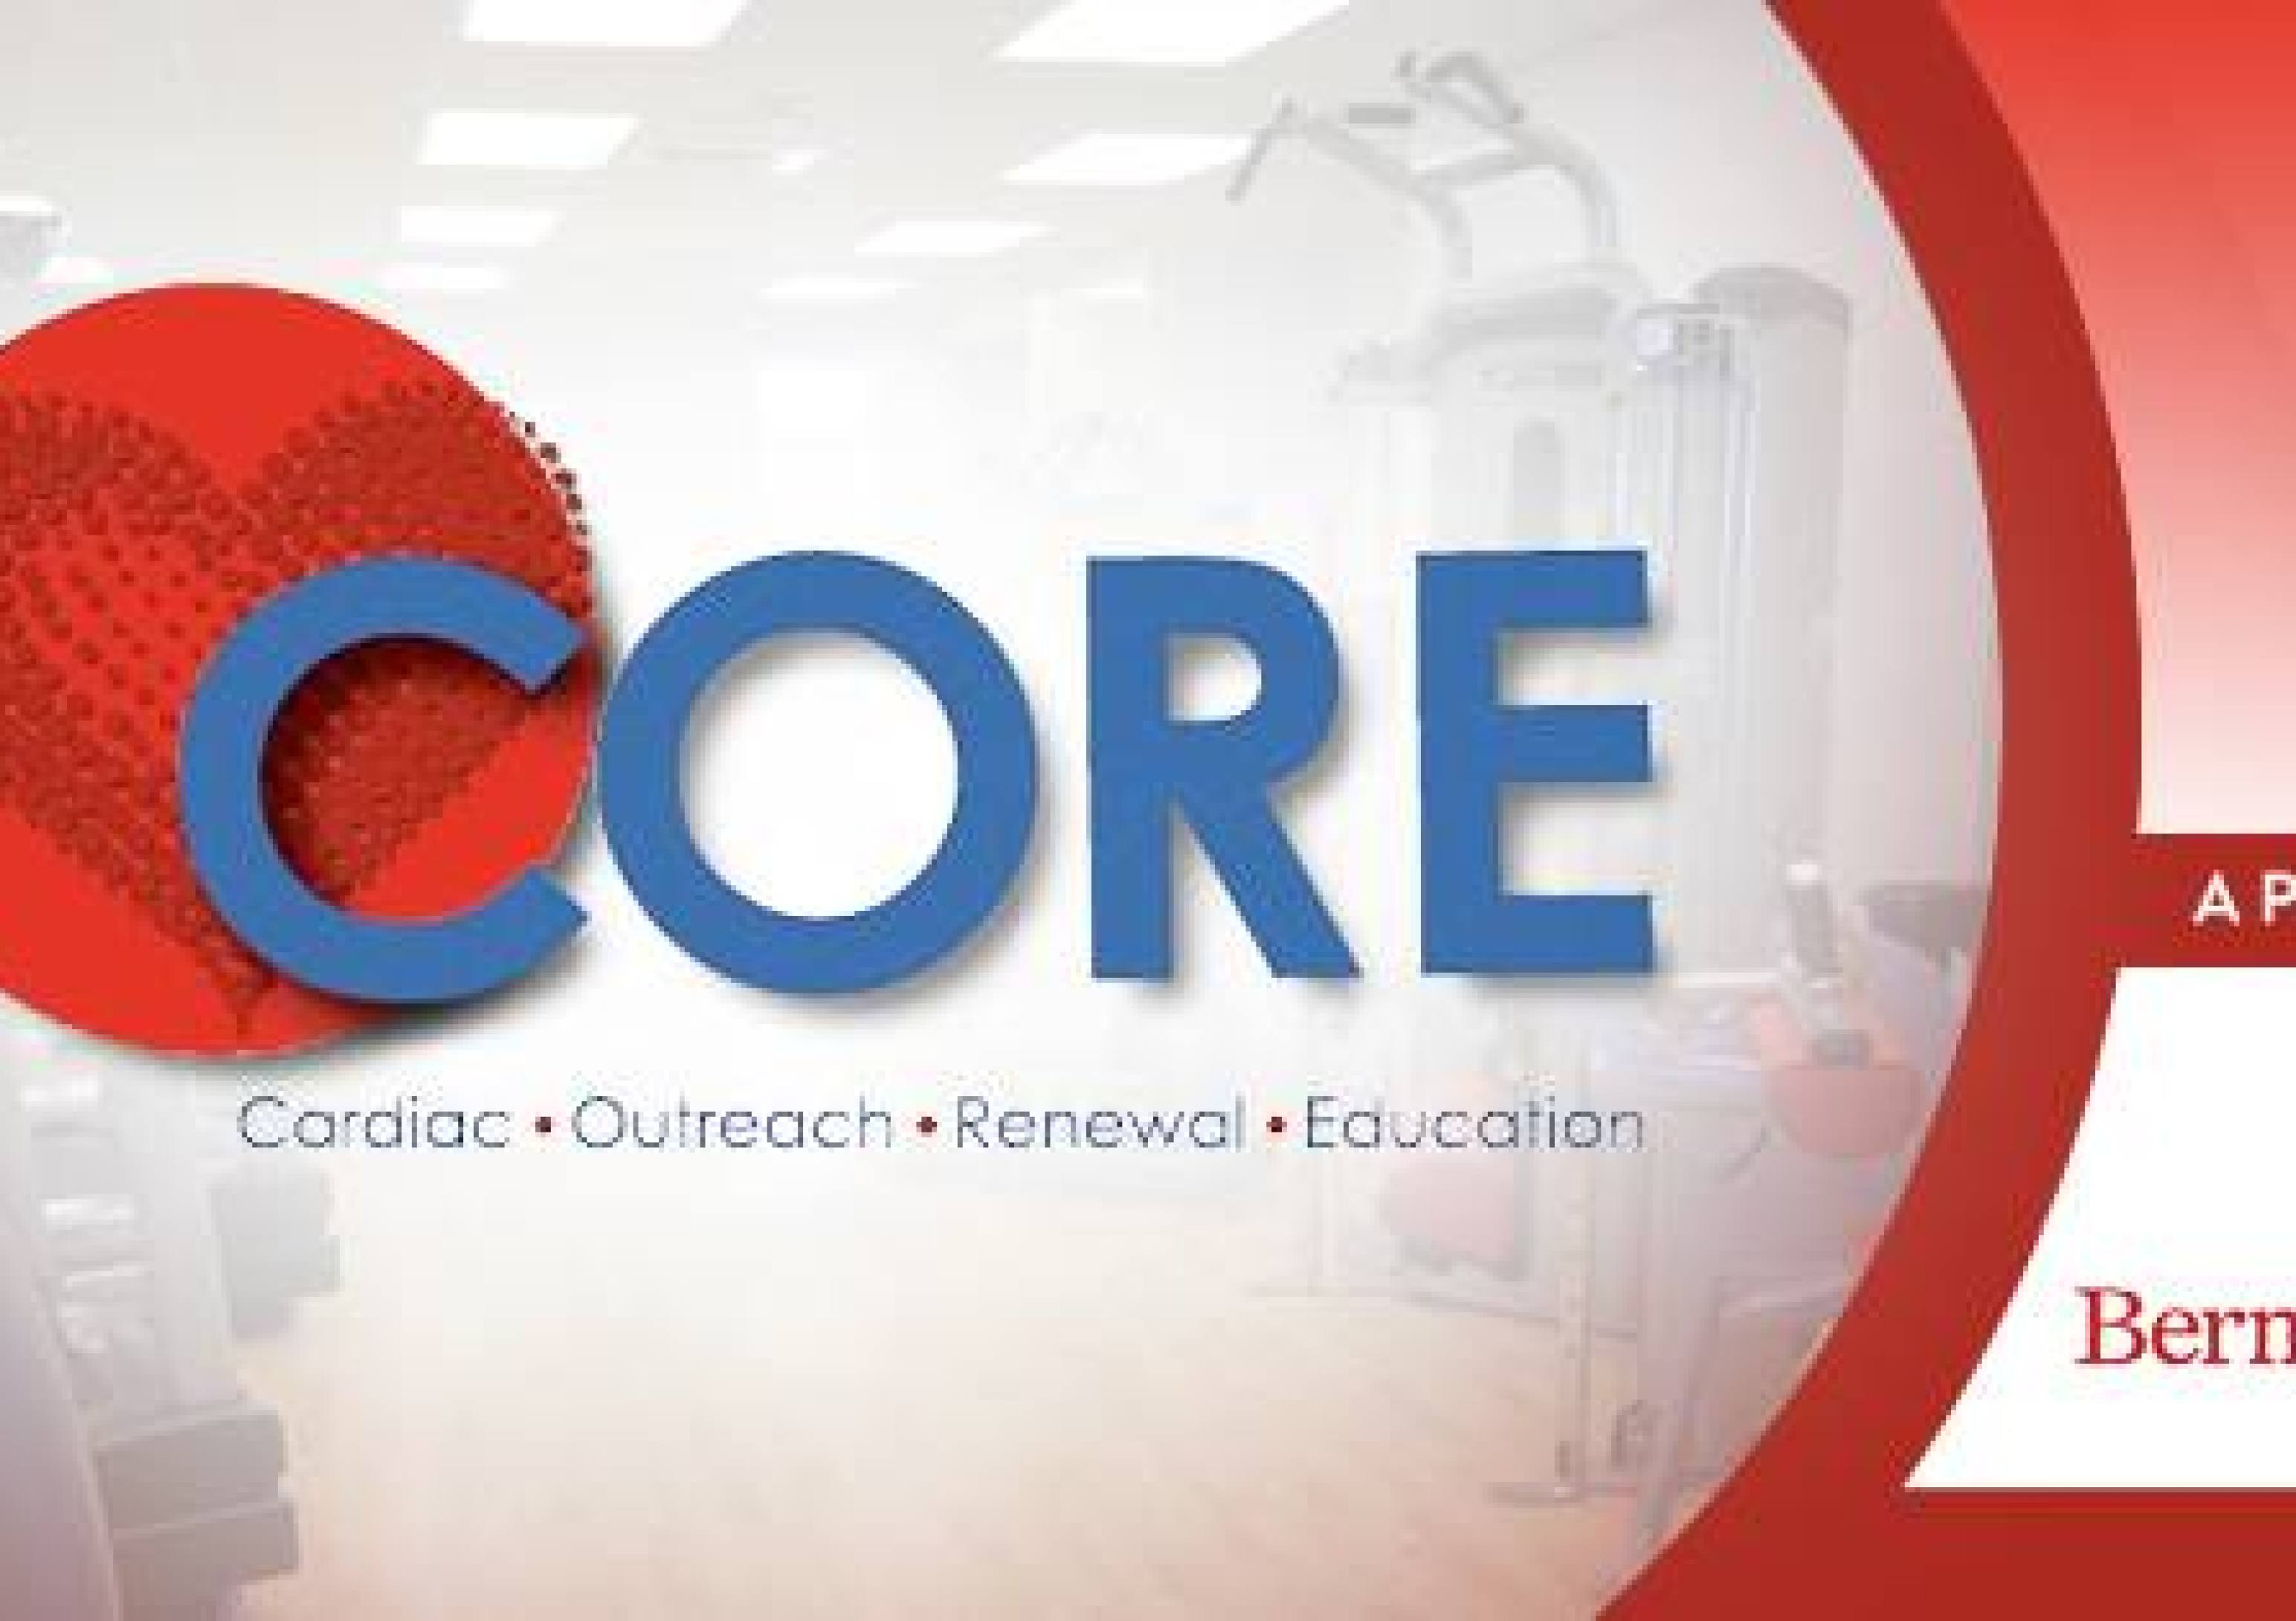 CORE Heart Health Center